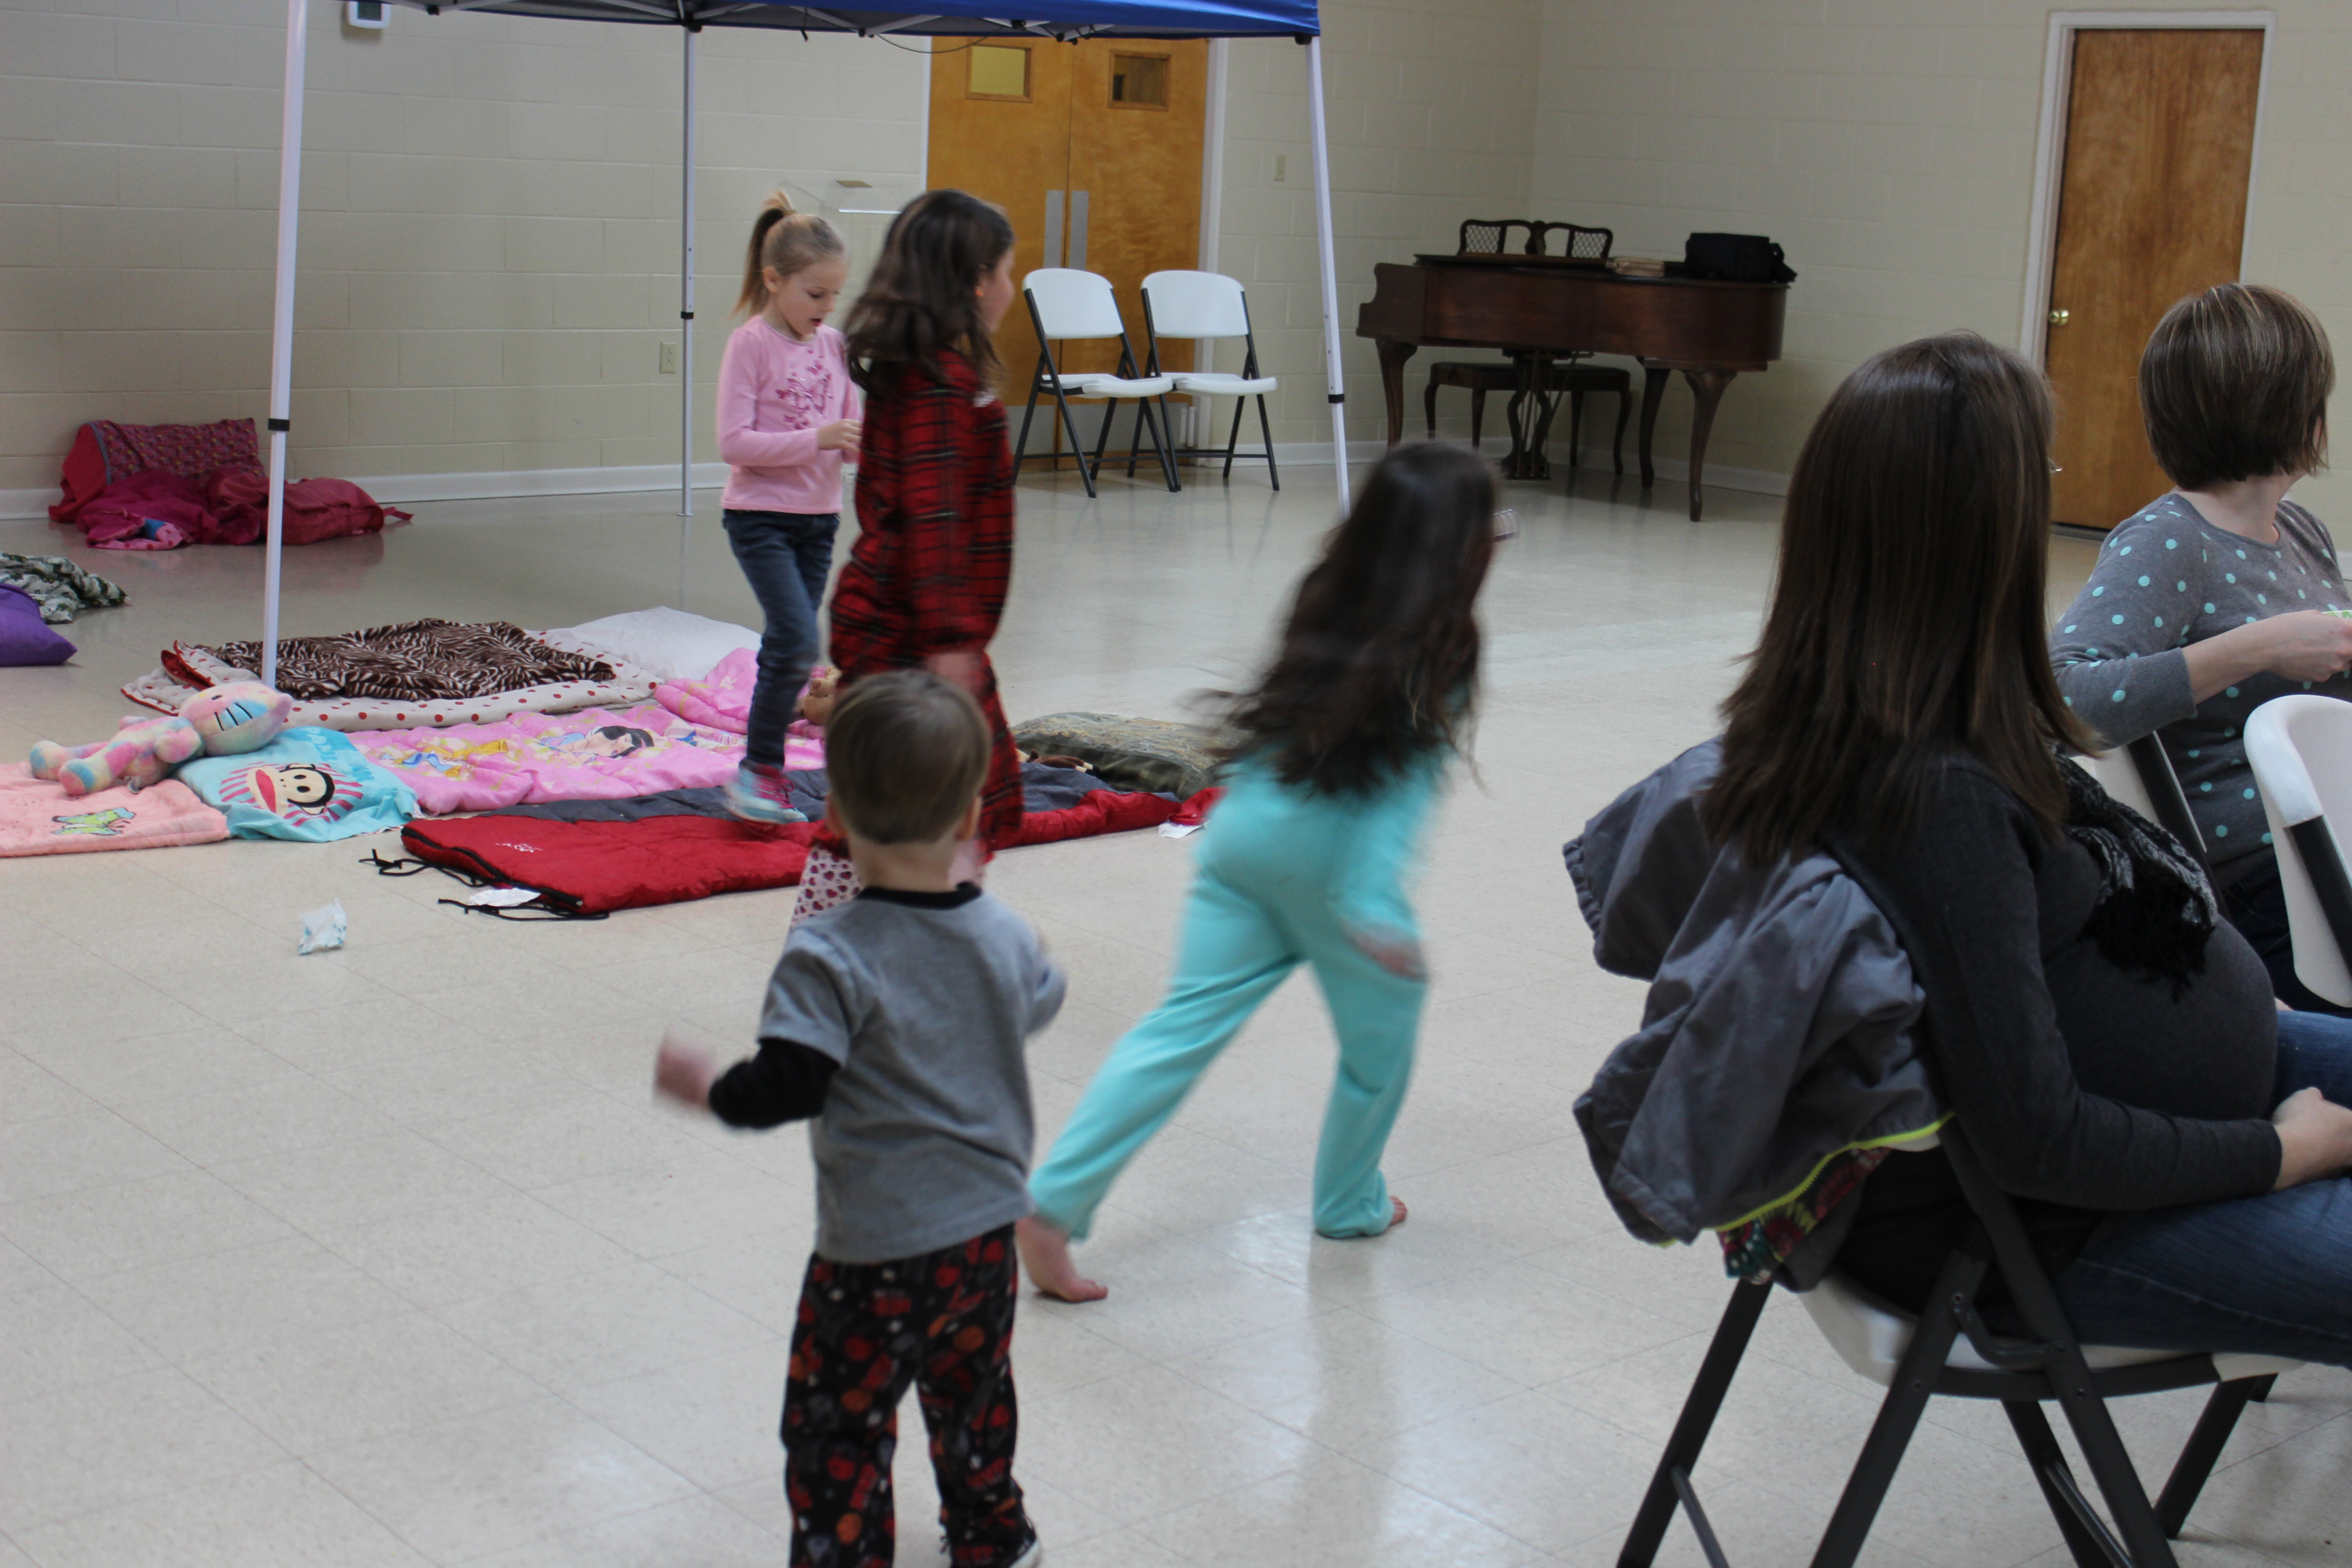 pictures of Lock-in 009